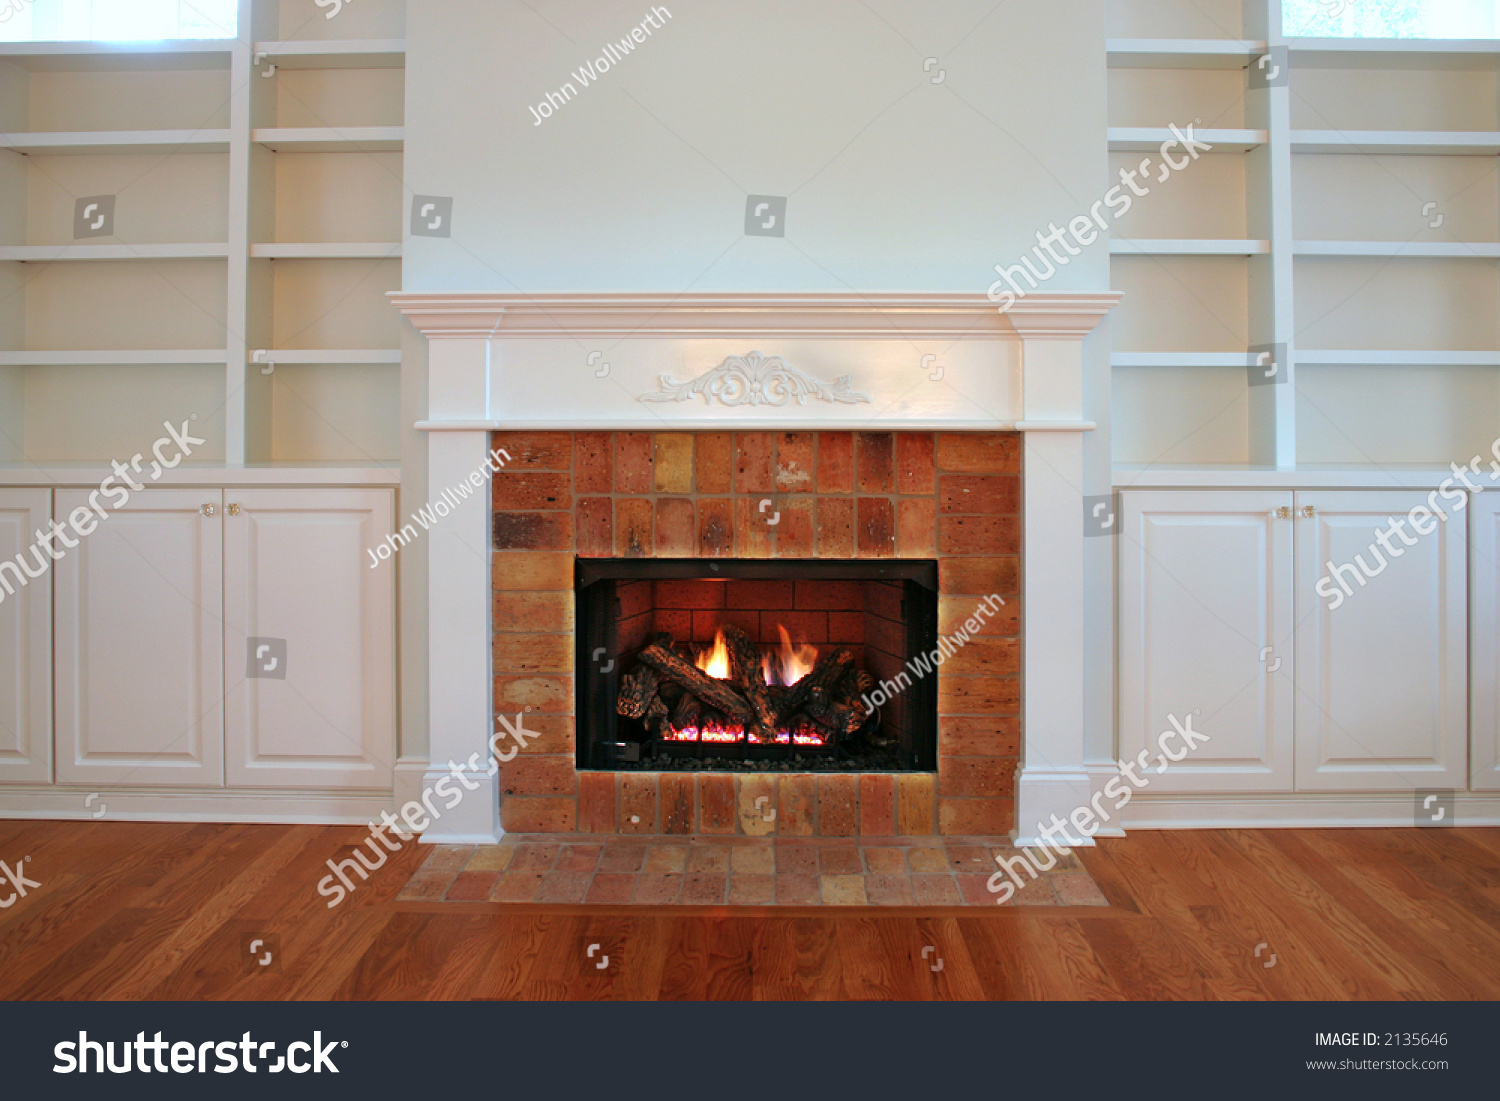 lit fireplace surrounded by built bookshelves stock photo 2135646